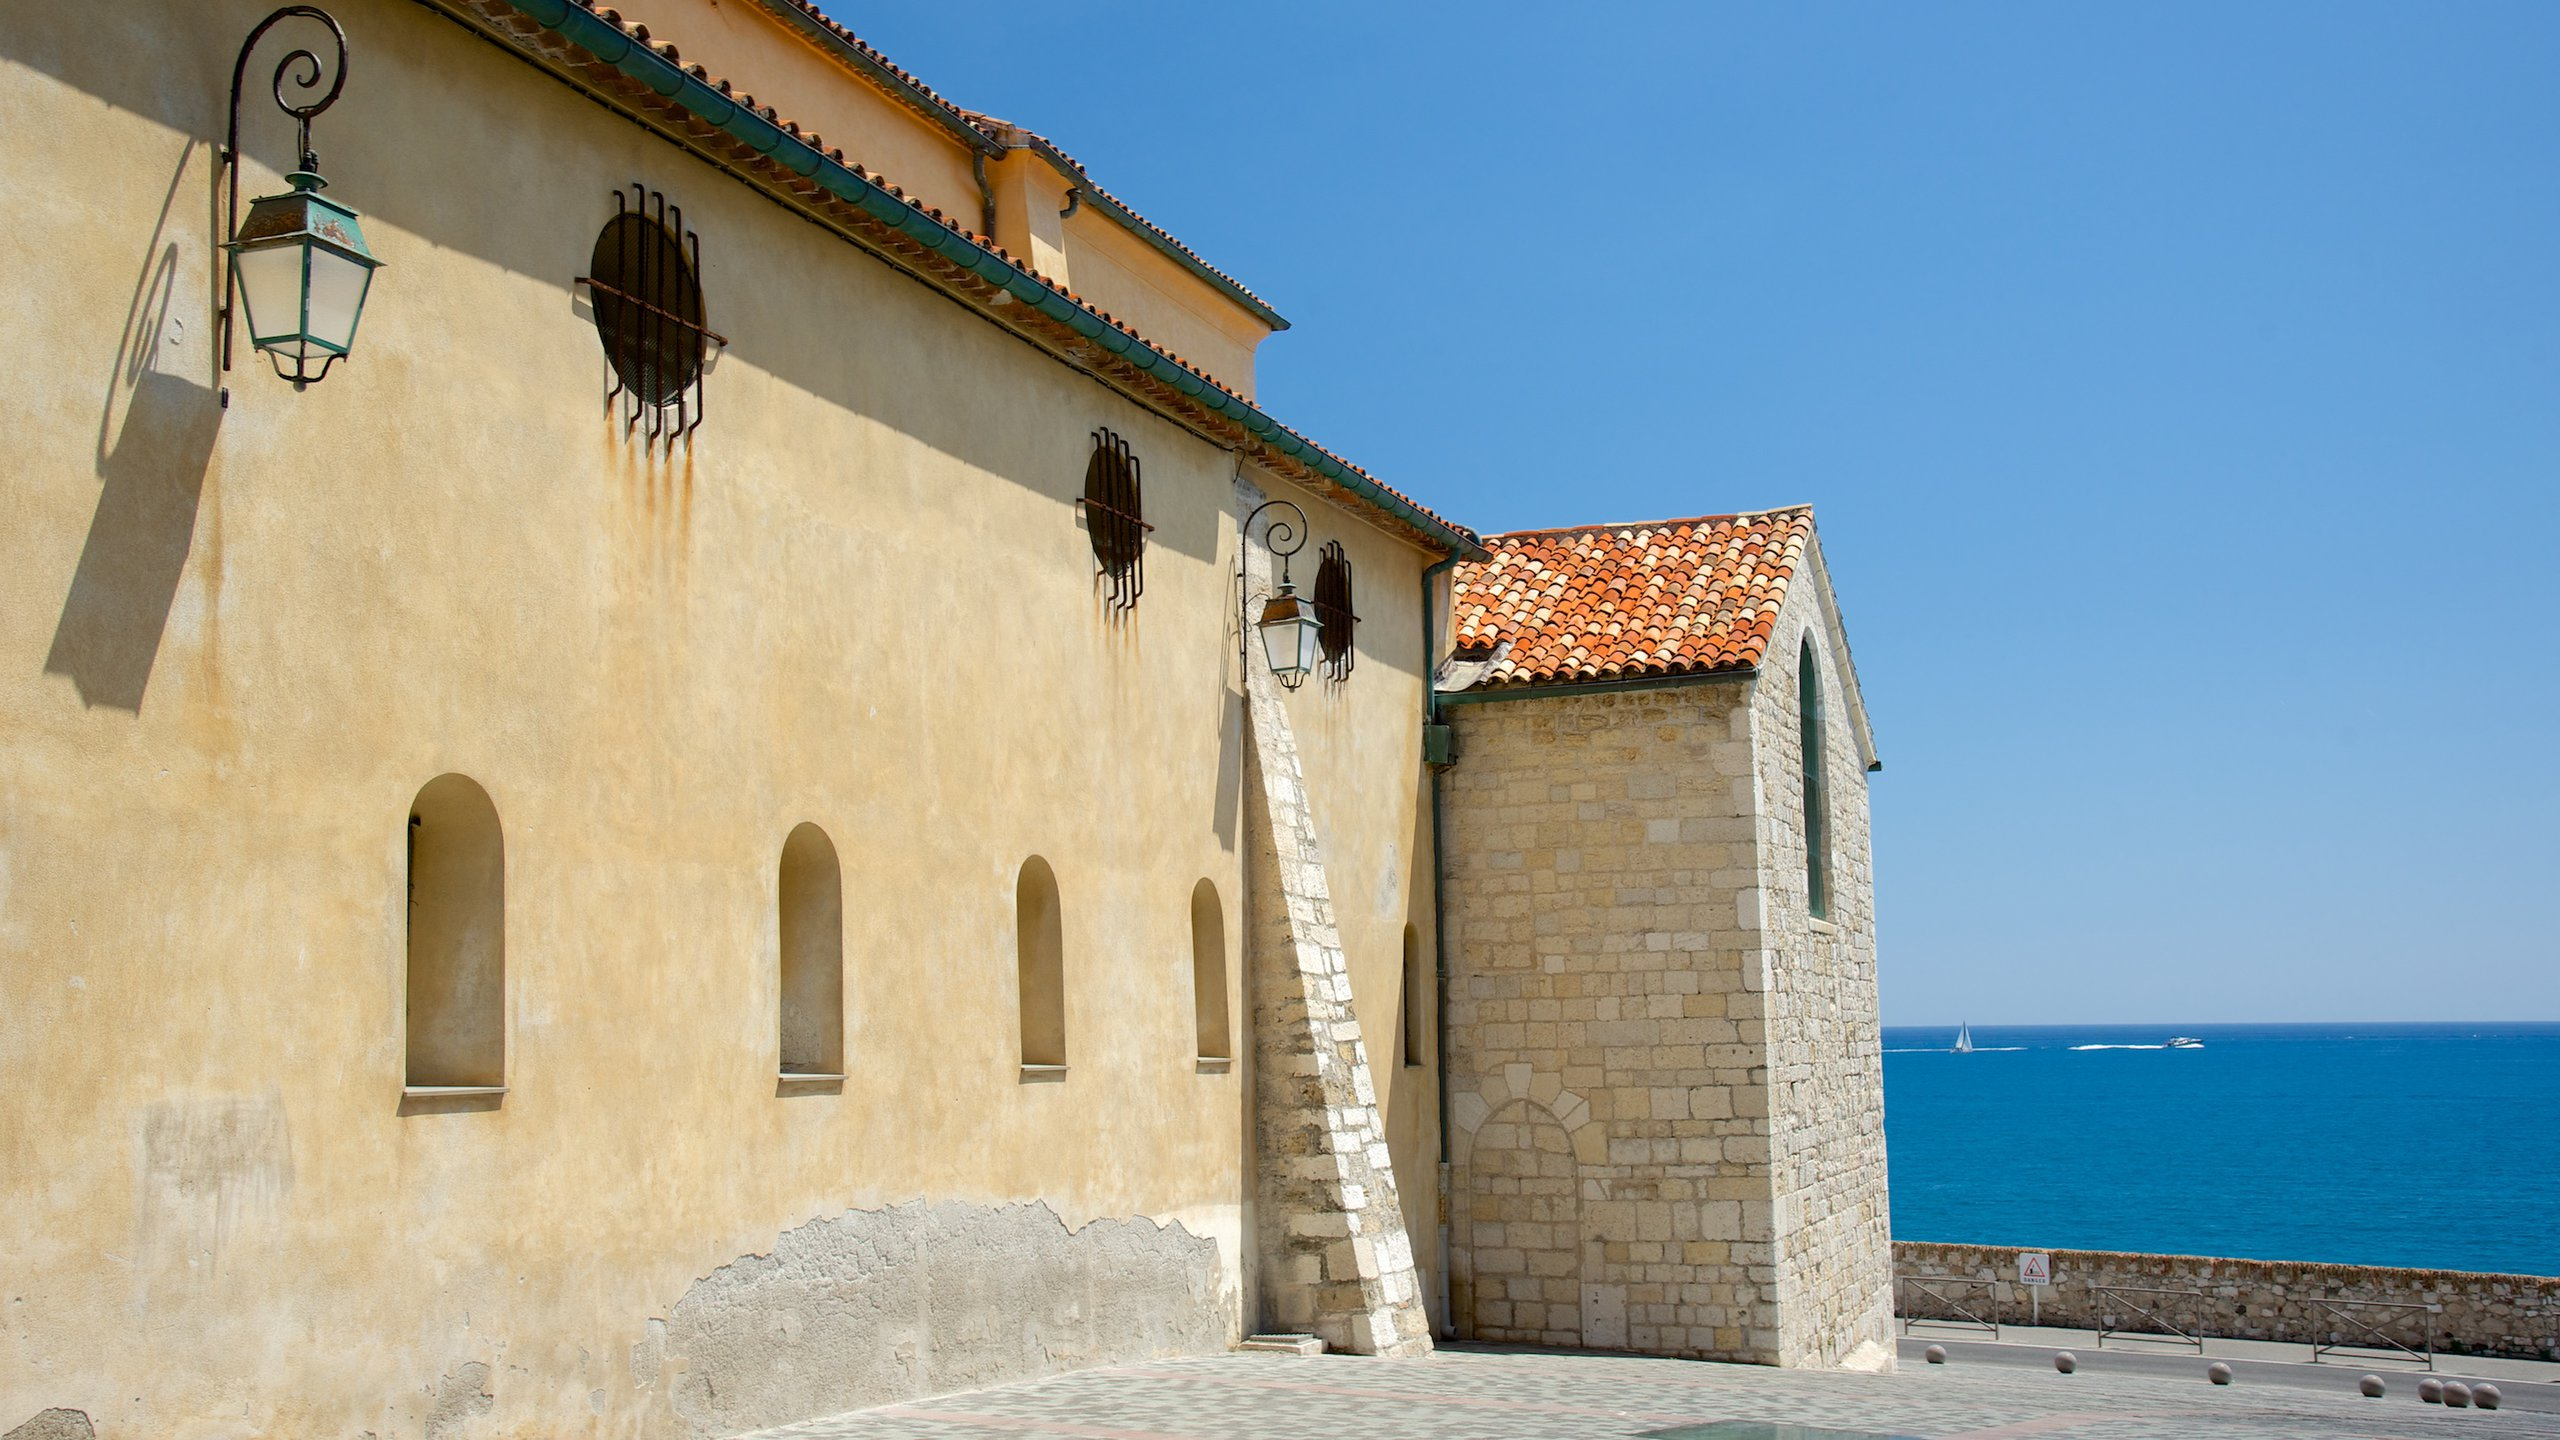 Antibes Cathedral, Antibes, Alpes-Maritimes, France